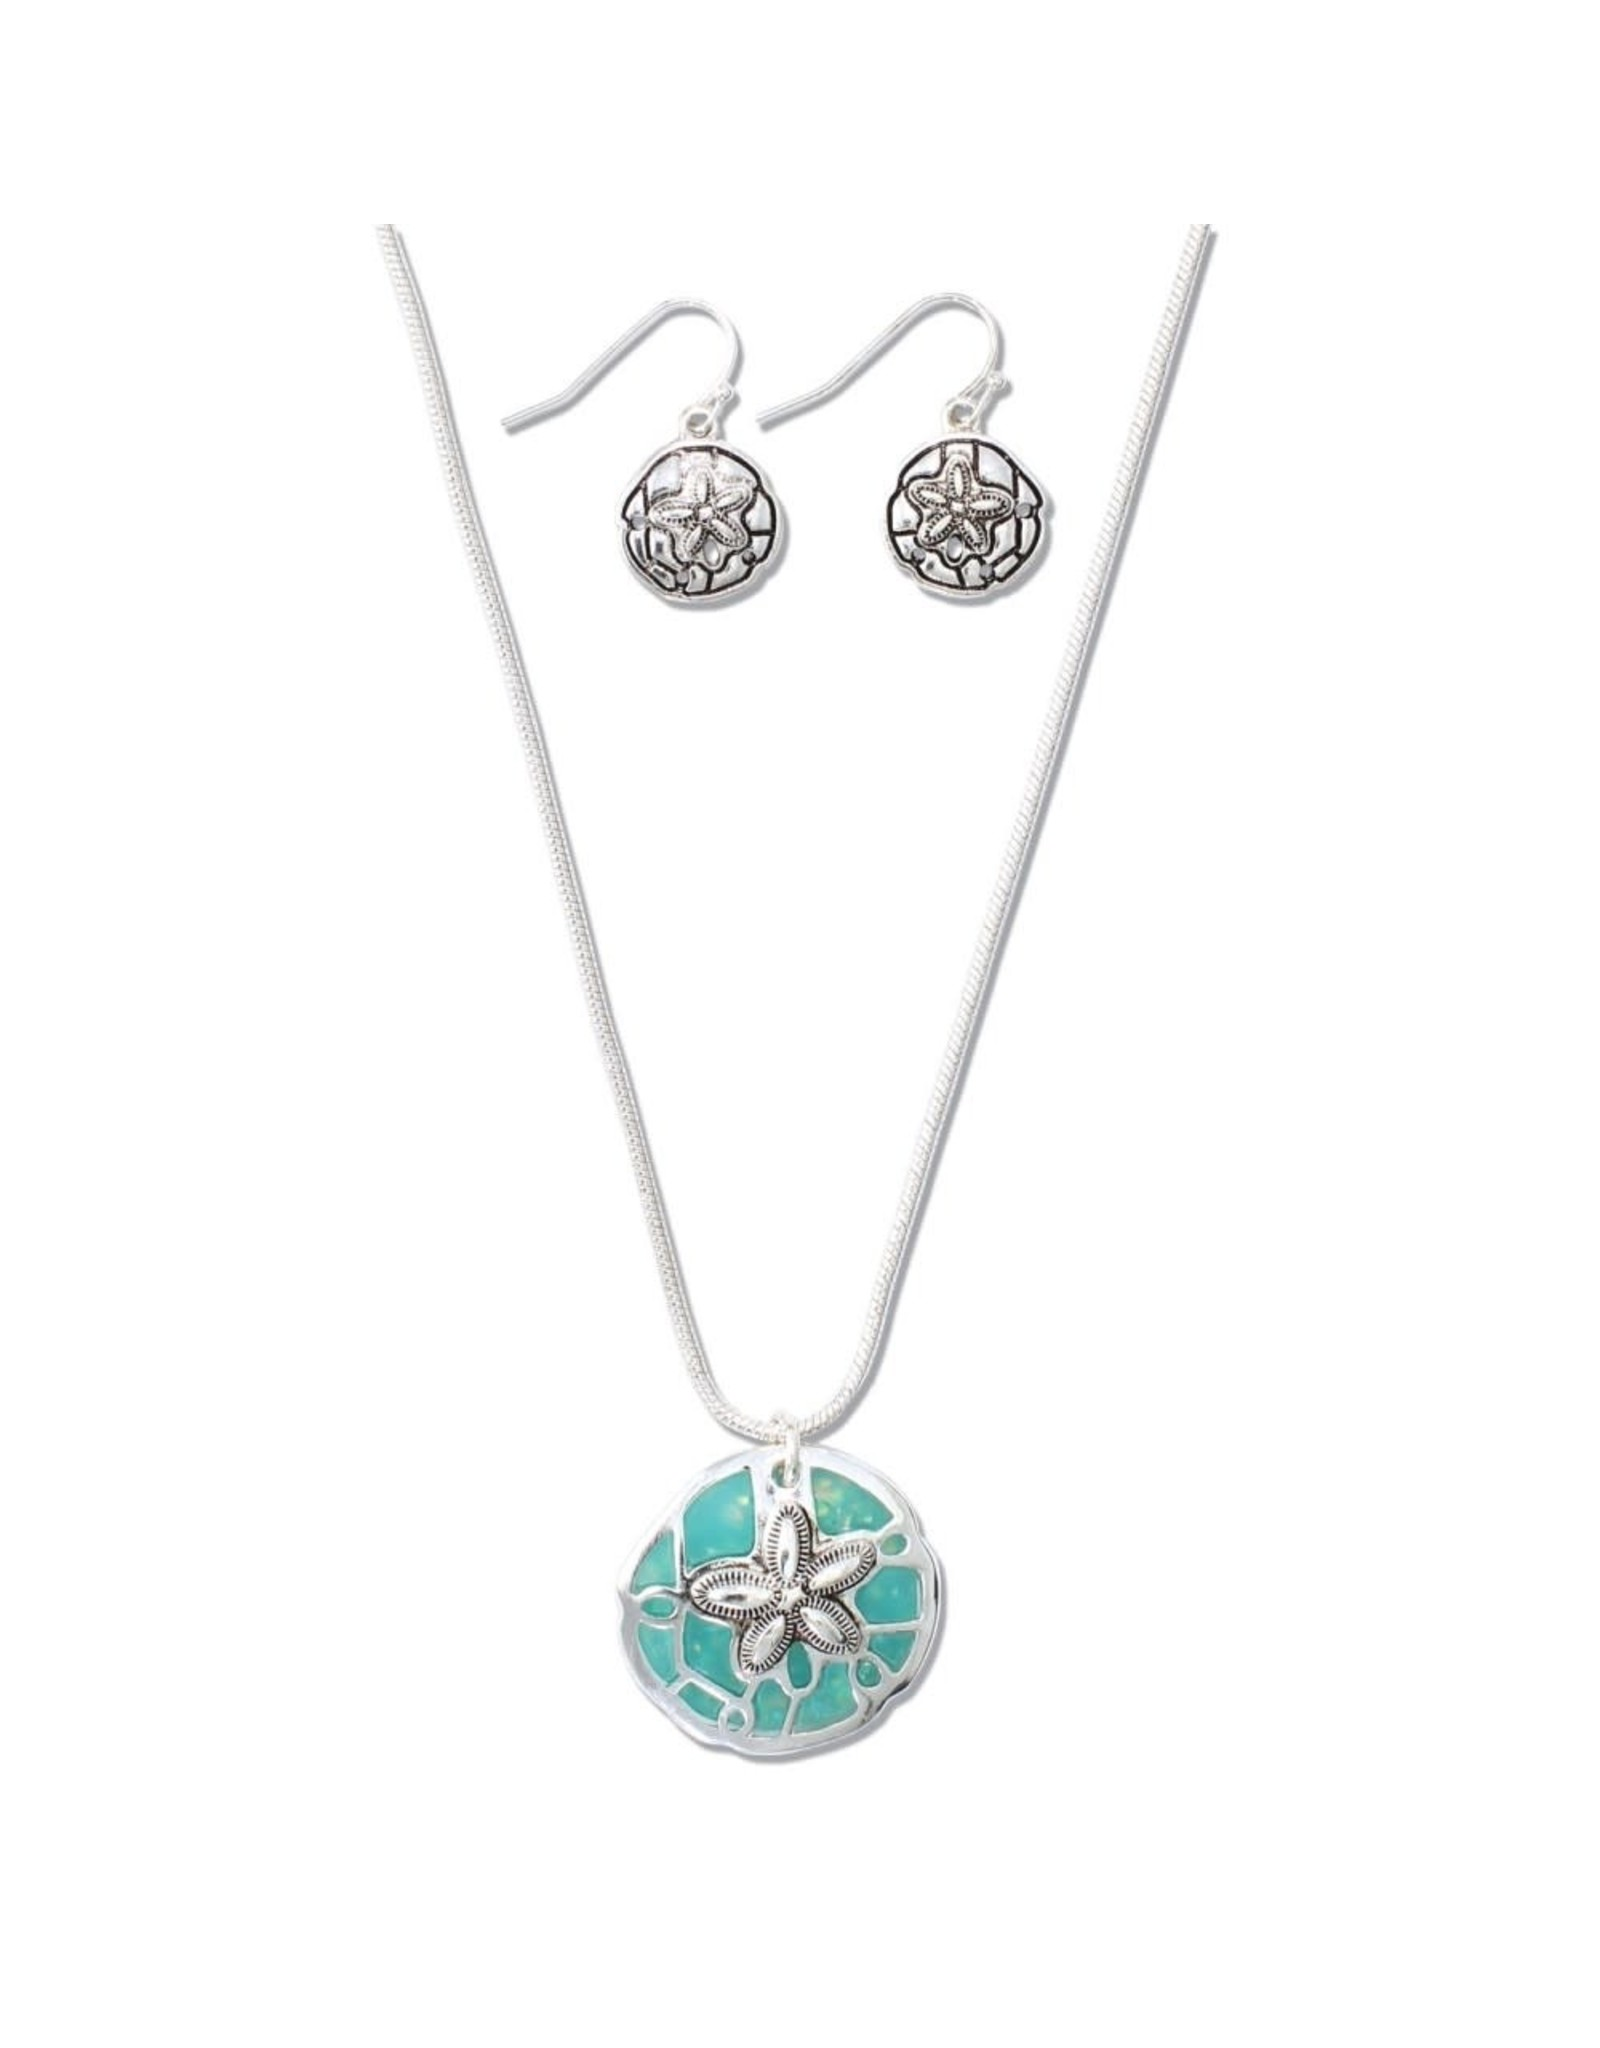 Periwinkle by Barlow 17 Inch Vivid Starfish Turquoise Necklace Set